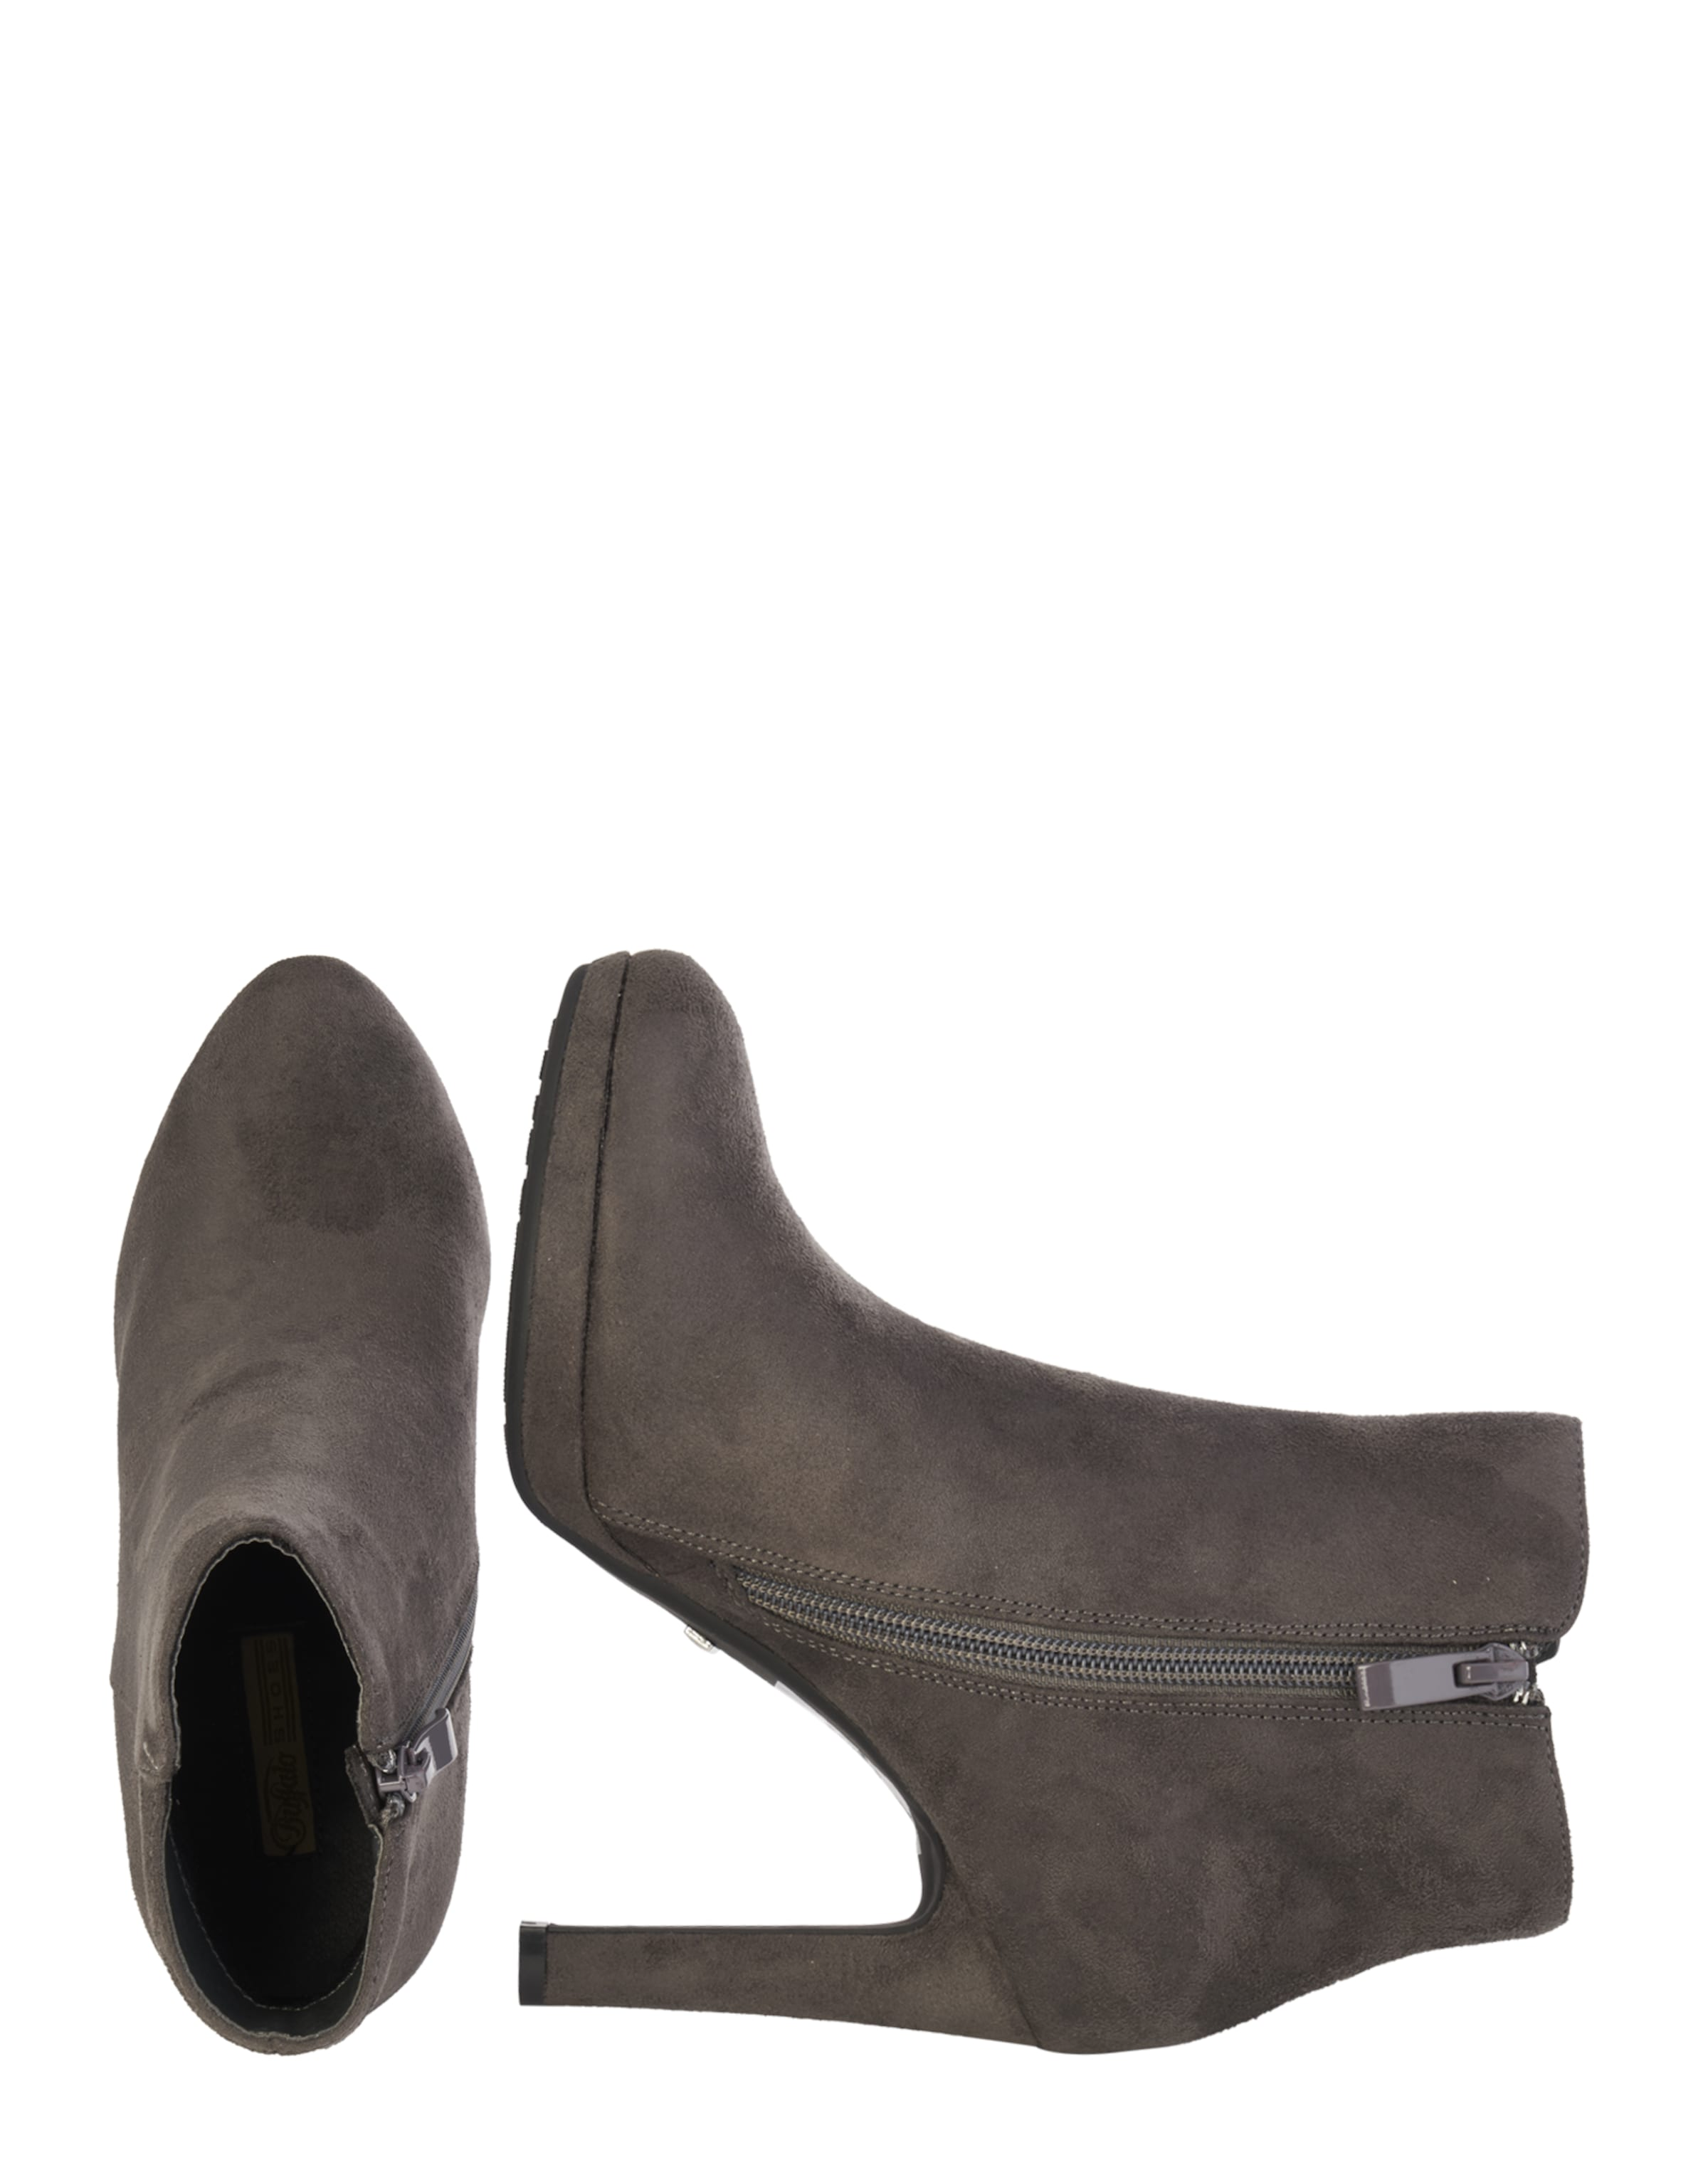 Bottines Greige En En Buffalo Greige Bottines Buffalo BrdCexo